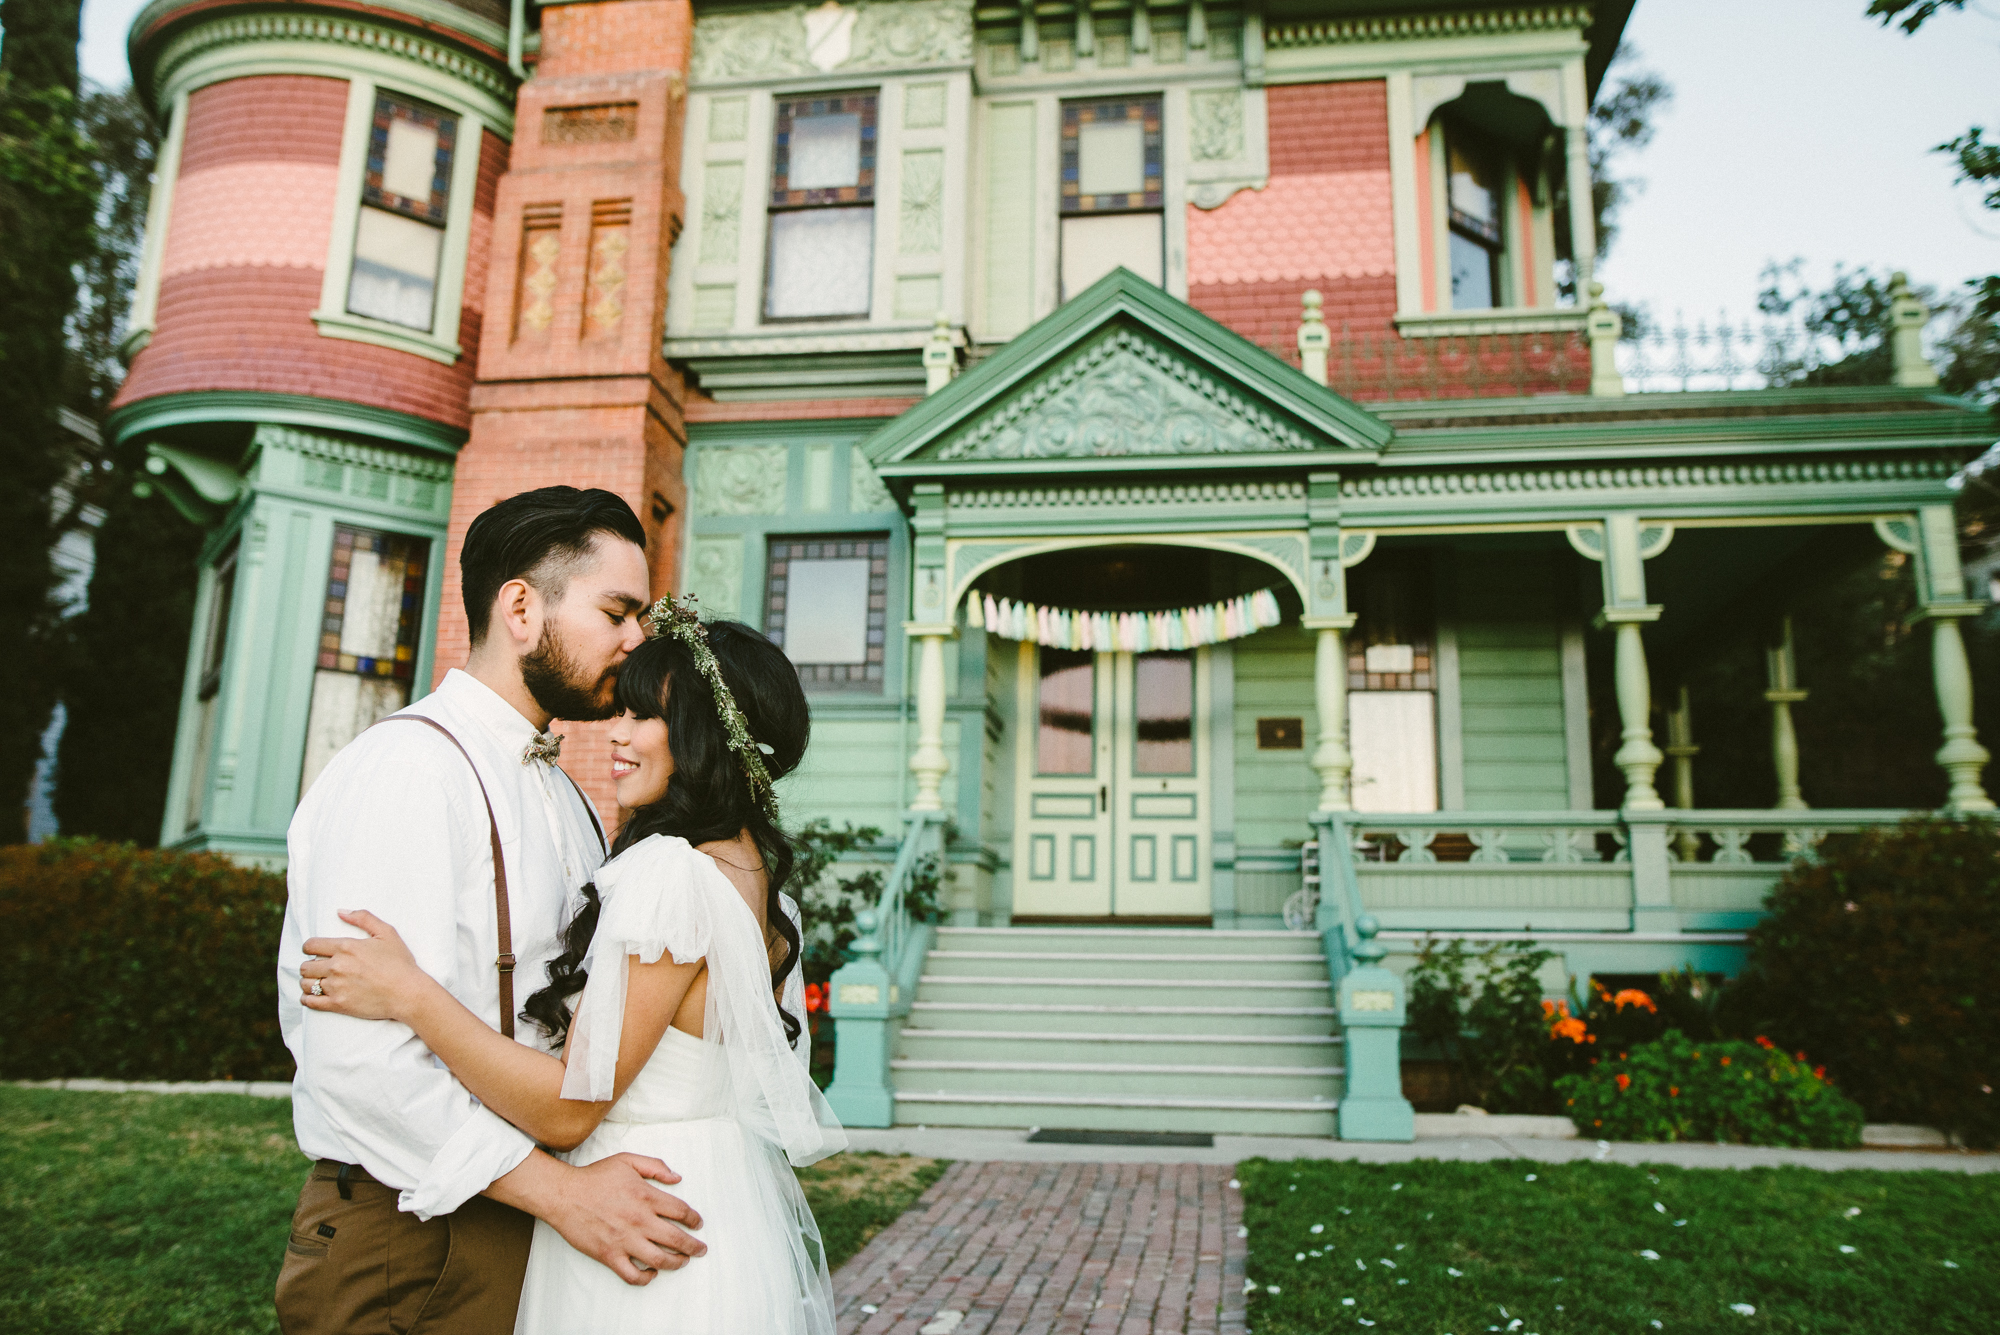 Isaiah & Taylor Photography - Los Angeles - Destination Wedding Photographers - Heritage Square Museum -74.jpg